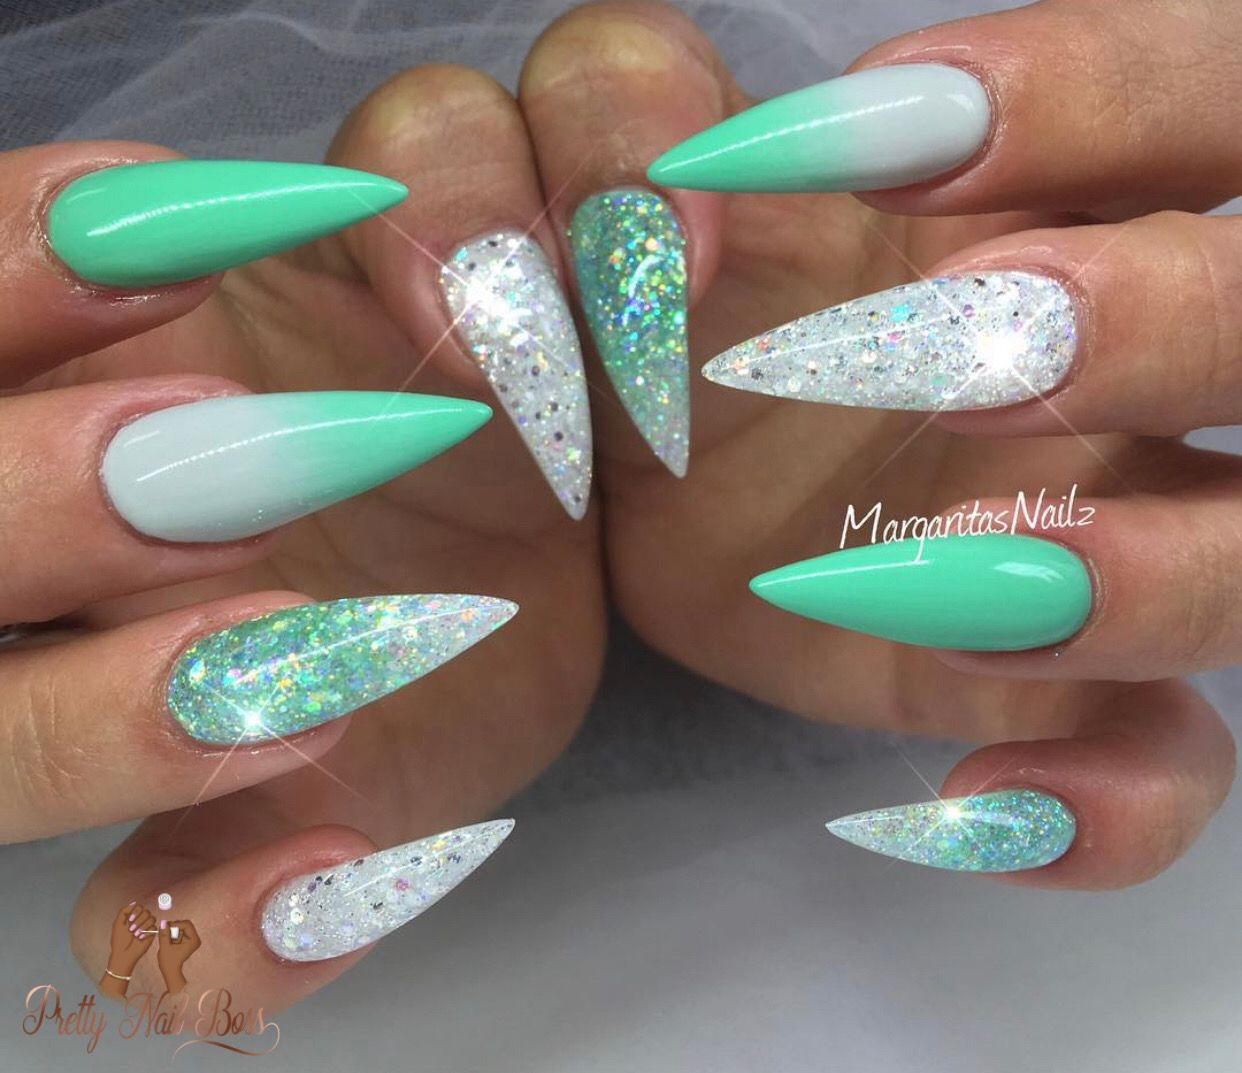 Nails Mint Green Acrylic Nails Glitter Nails Stiletto Nails In 2020 Summer Stiletto Nails Teal Nails Nail Designs